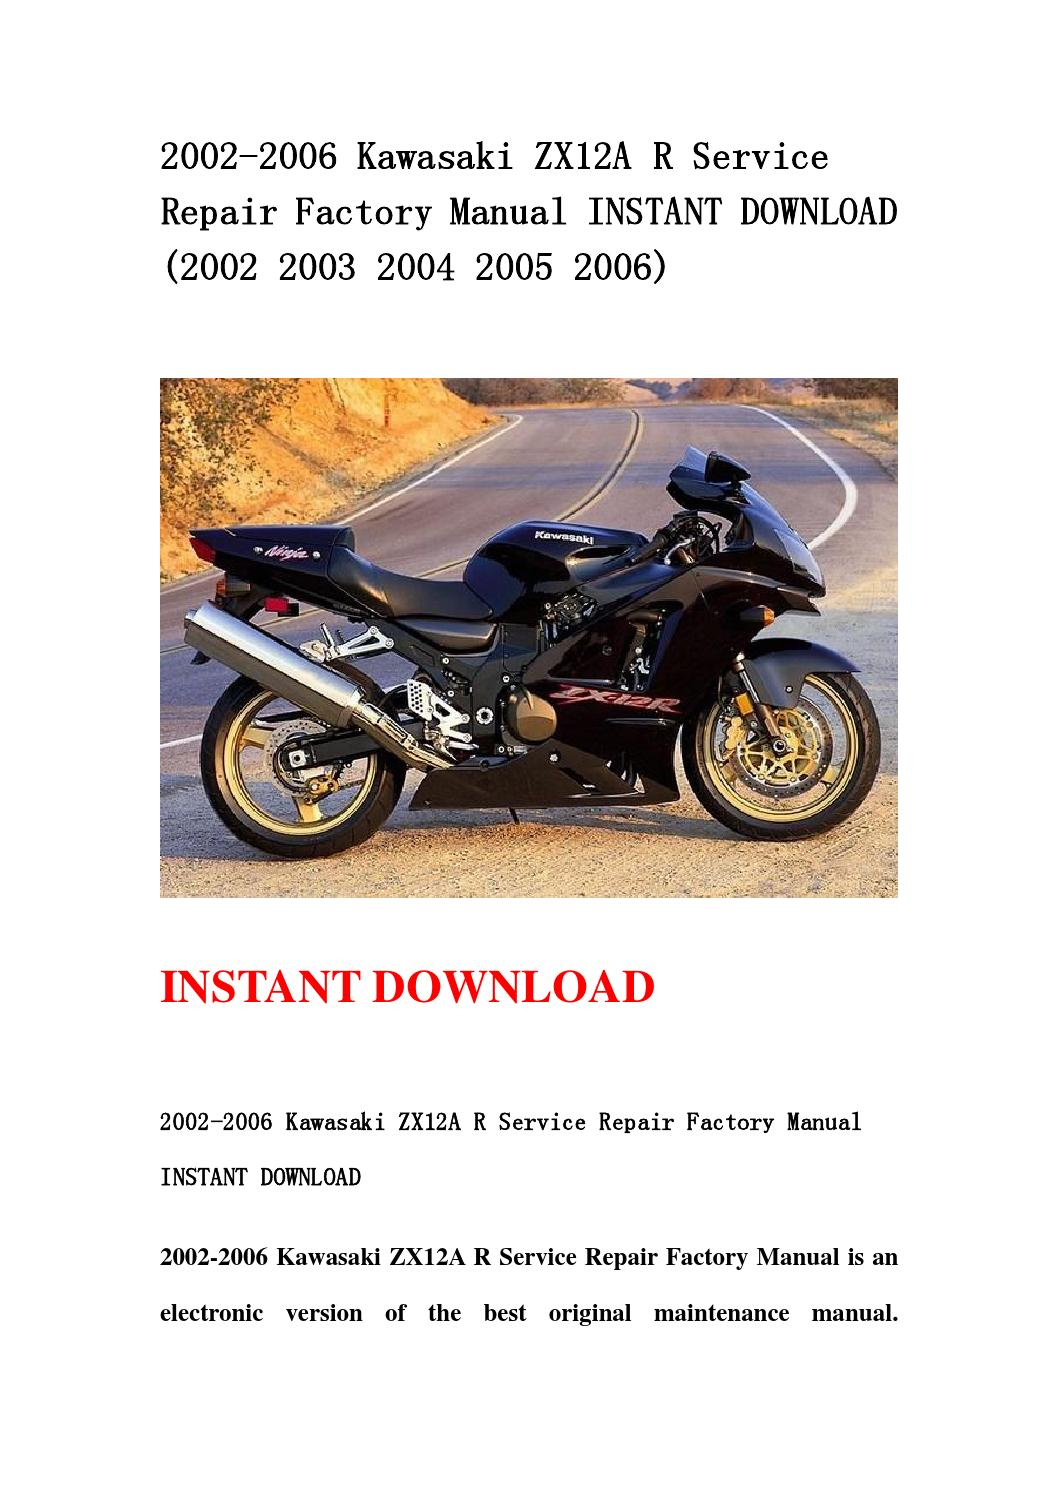 2002 2006 kawasaki zx12a r service repair factory manual instant download  (2002 2003 2004 2005 2006) by hdgsnnnem - issuu